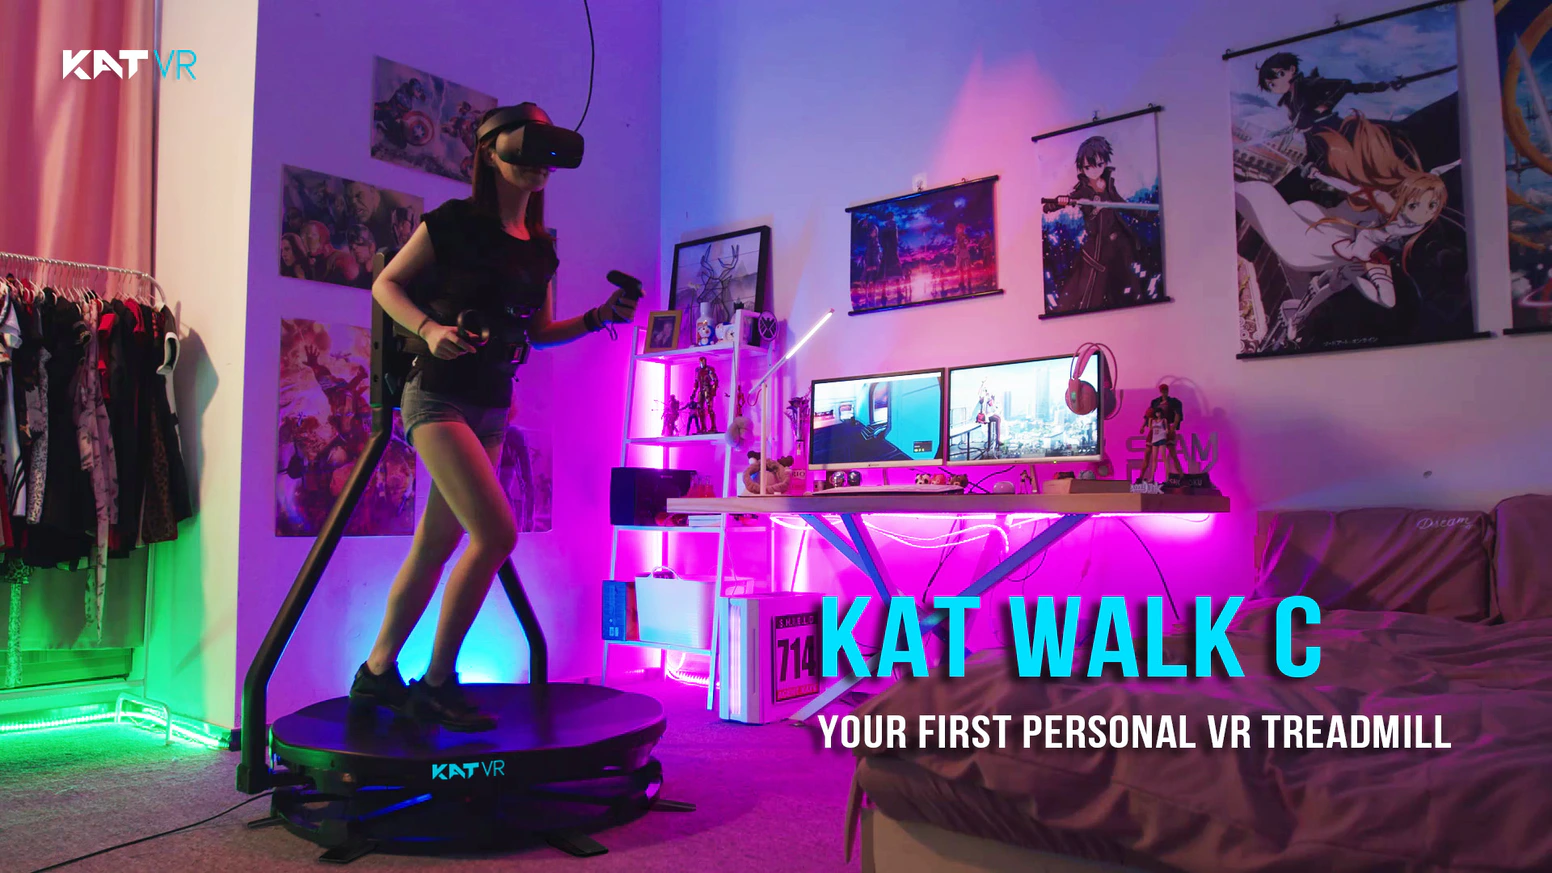 Consumer VR Treadmills Still Aren't A Thing, But Kat VR Is Giving It A Go Anyway